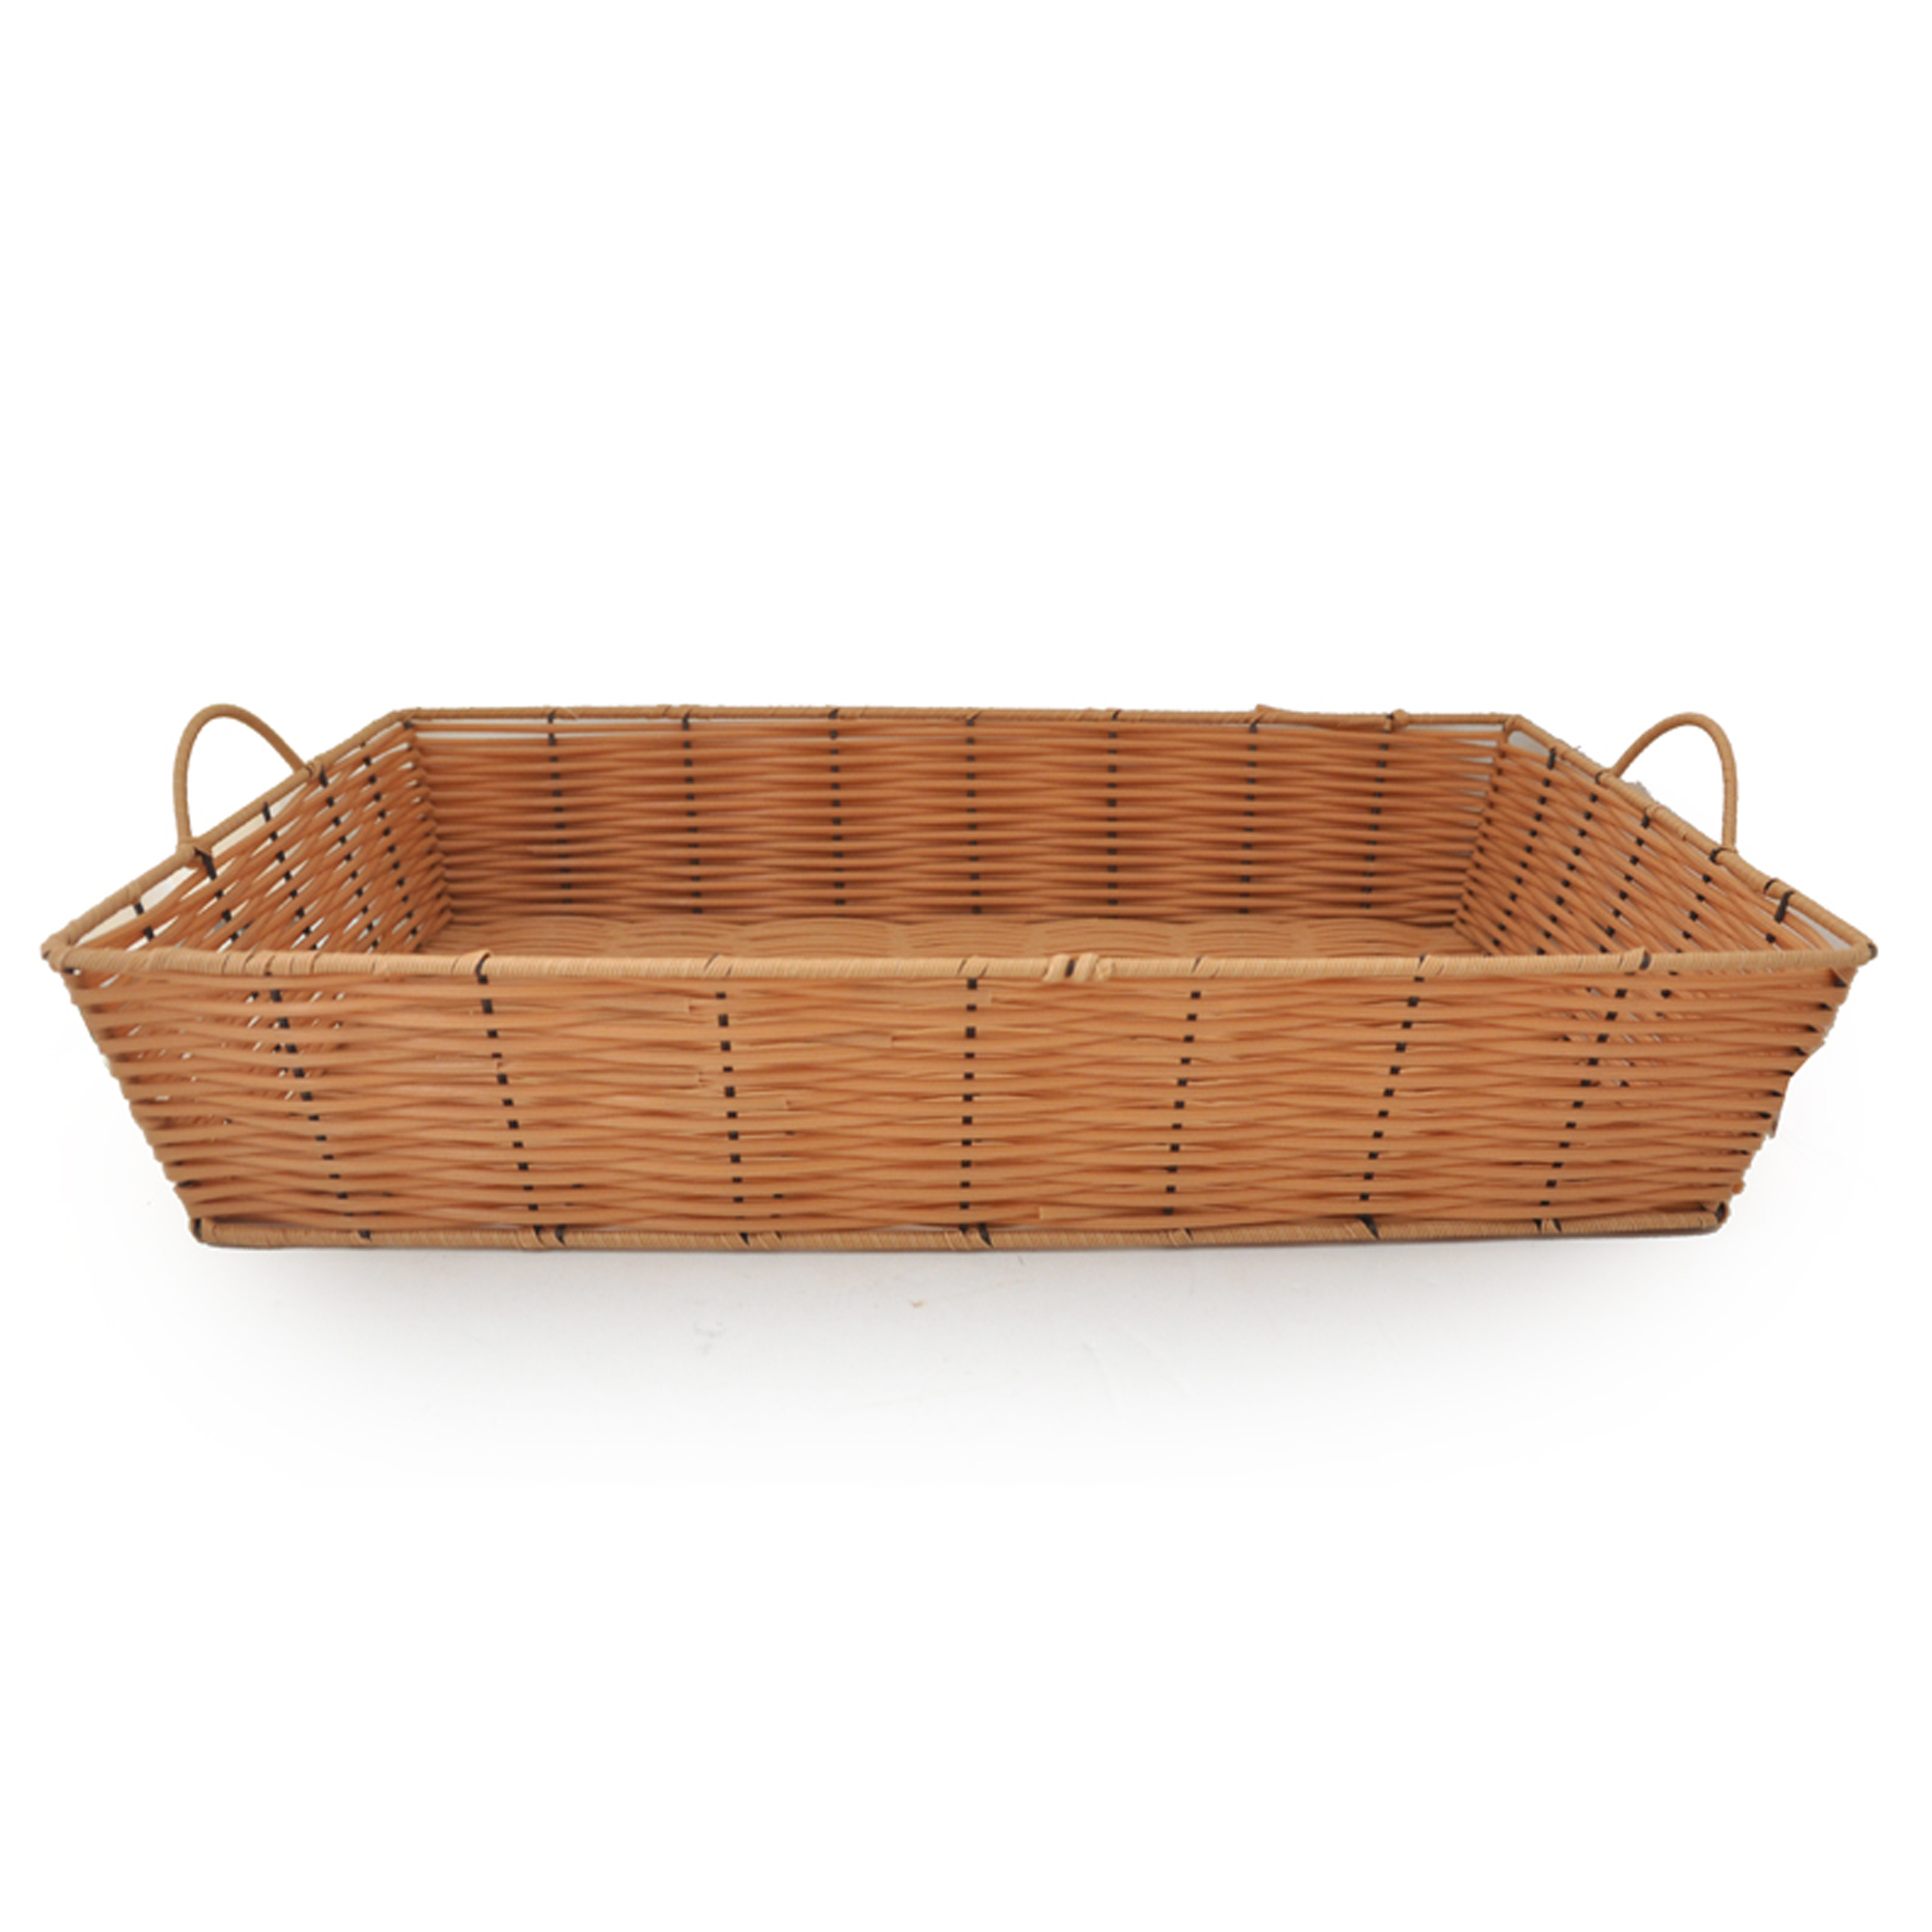 Rectangular Synthetic Wicker Tray with Handles - Large 17in